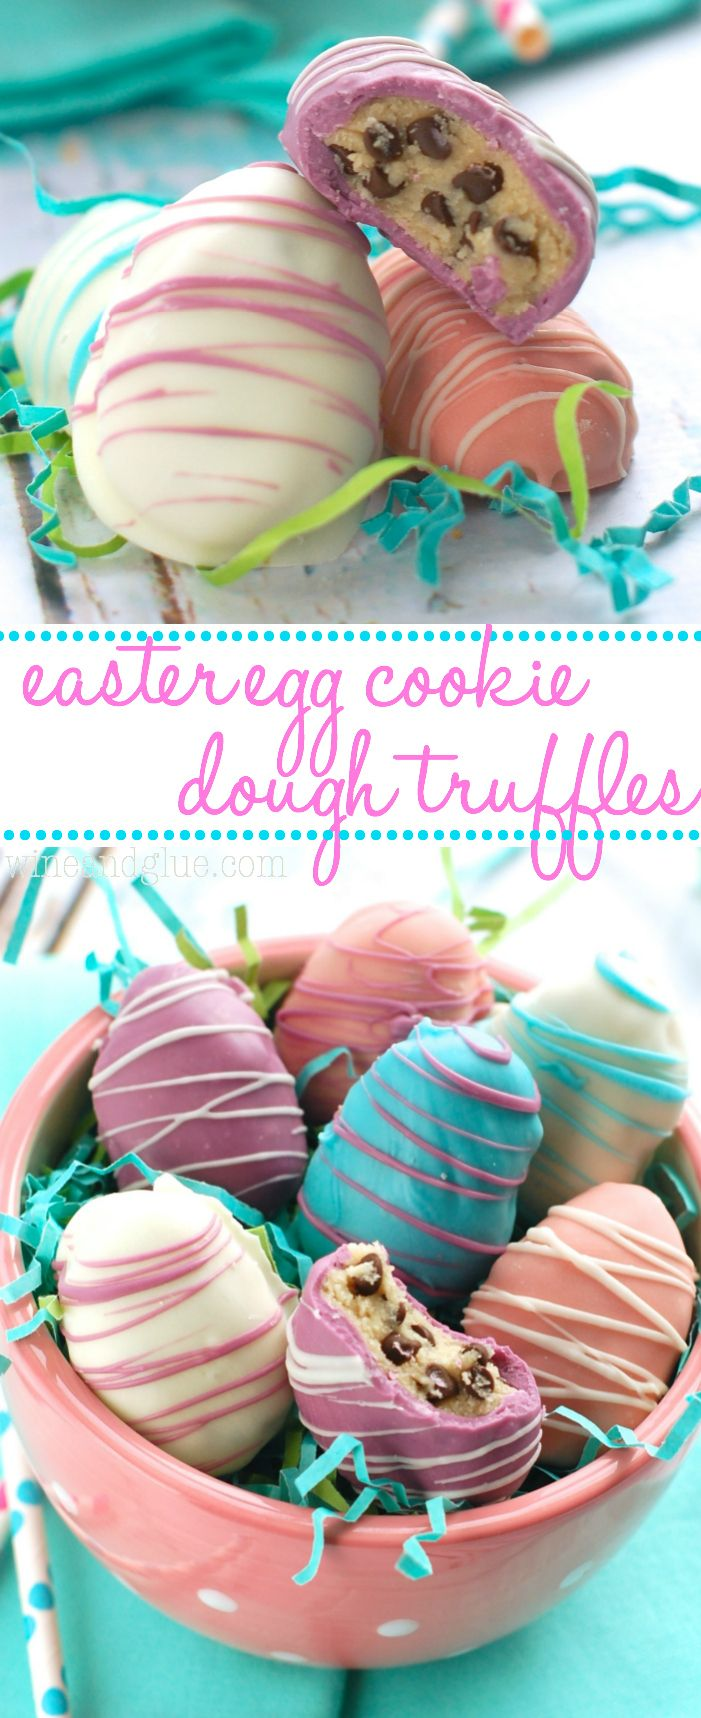 36 best images about easter on pinterest easter egg cookie dough truffles negle Choice Image